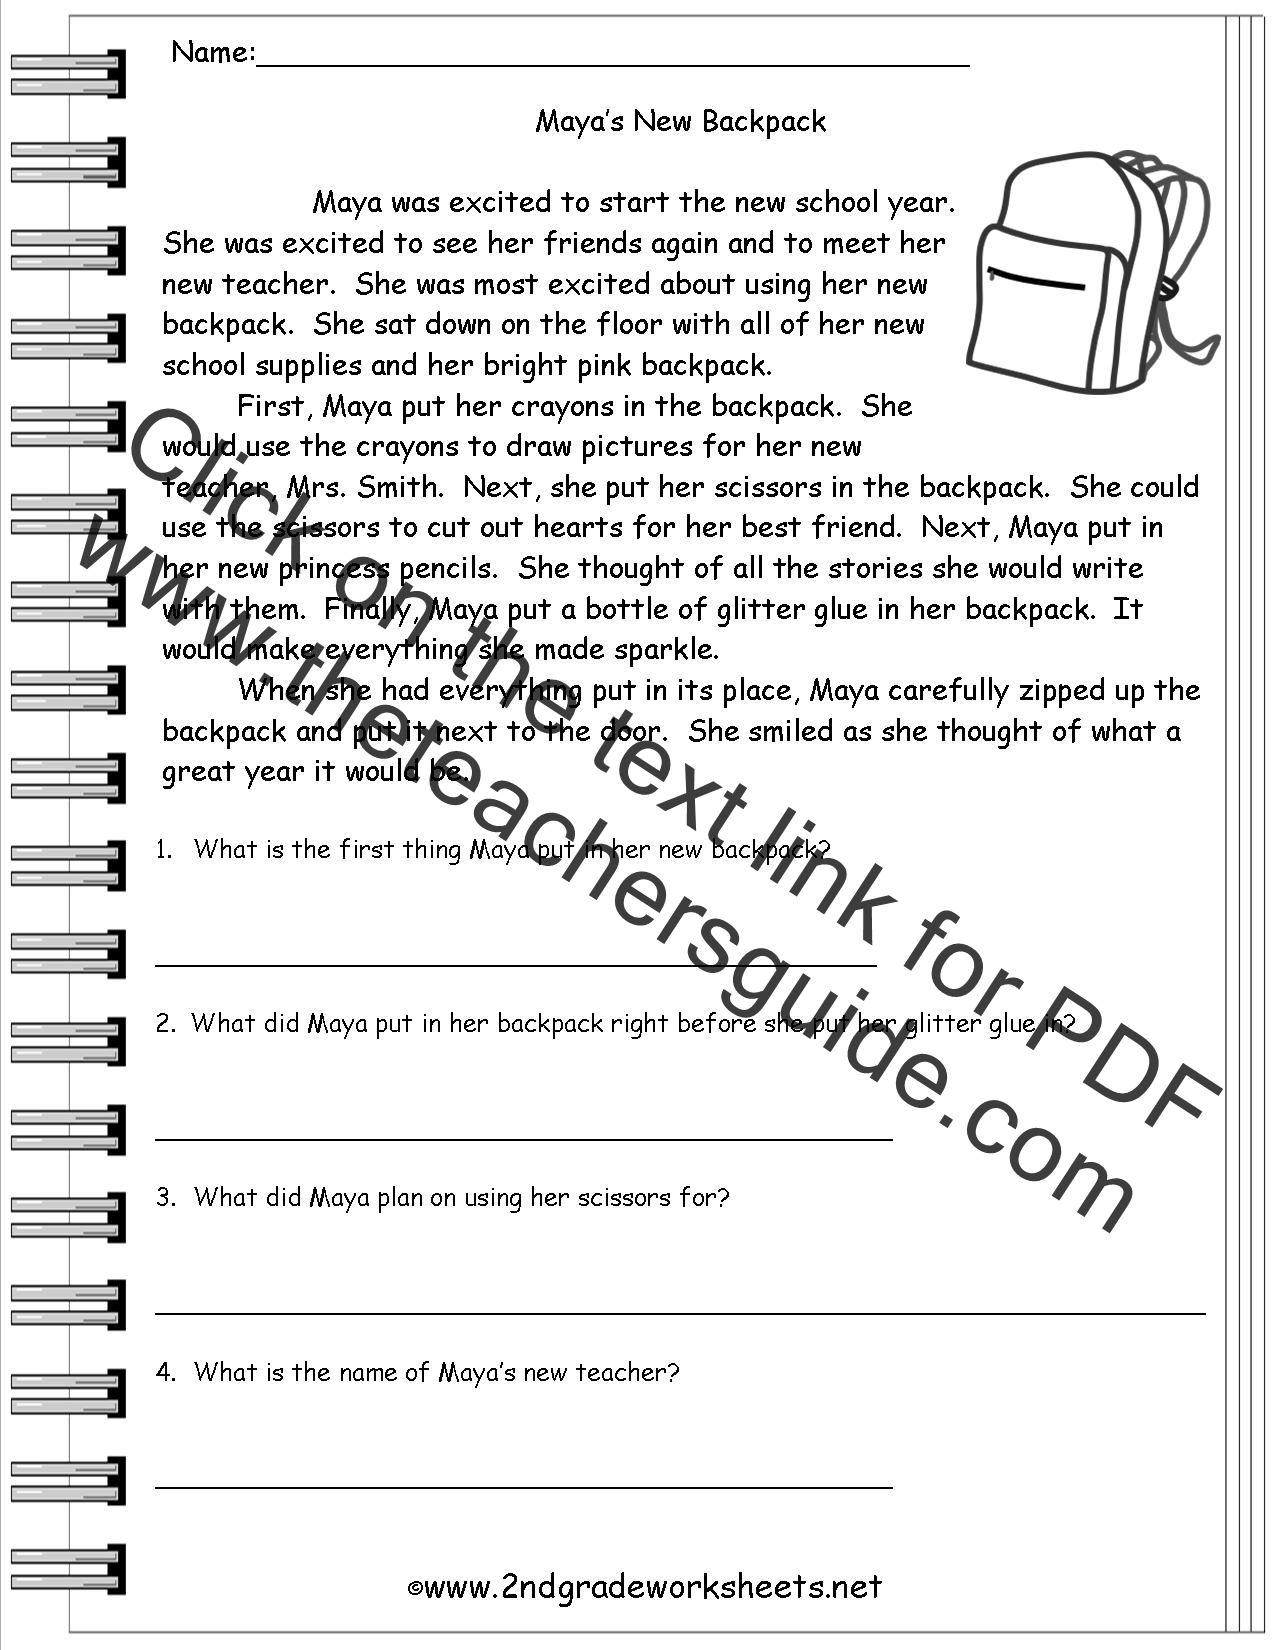 Reading Worksheeets – Free Printable Reading Comprehension Worksheets for 2nd Grade